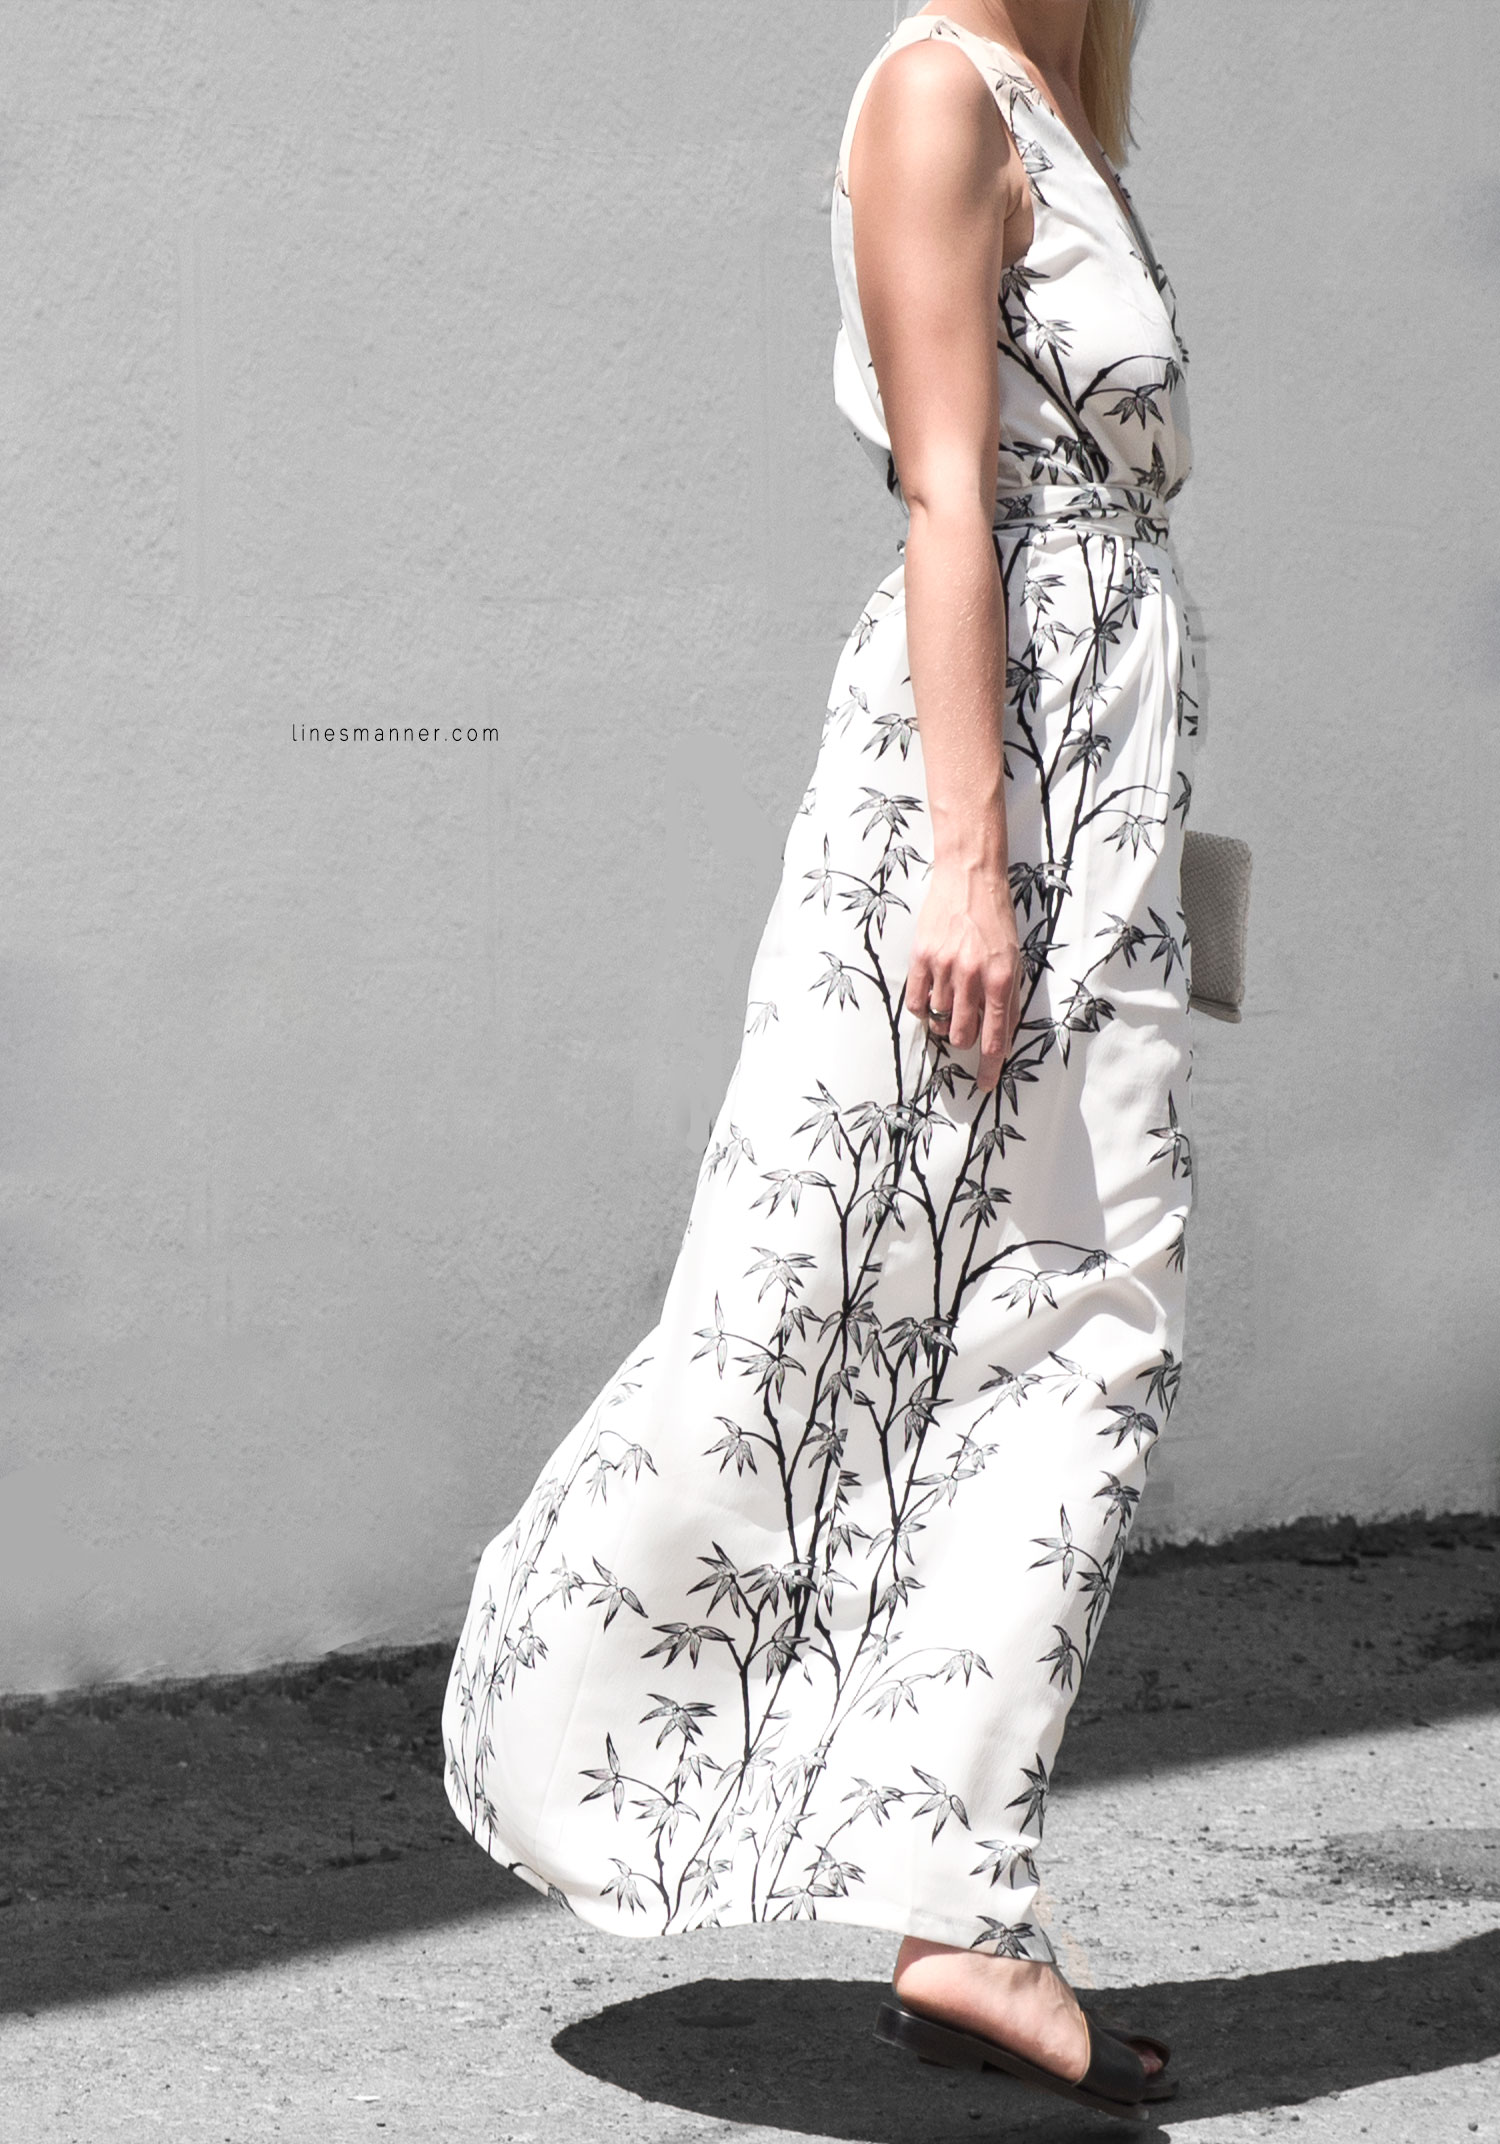 Lines-Manner-Minimal-Simplicity-Essentials-Bon_Label-Neon_Rose_Print-Bamboo-Slit_Dress-Wrap_Dress-Maxi_Dress-Fesh-Black_and_White-Casual-Elegant-Bright-Monochrome-15